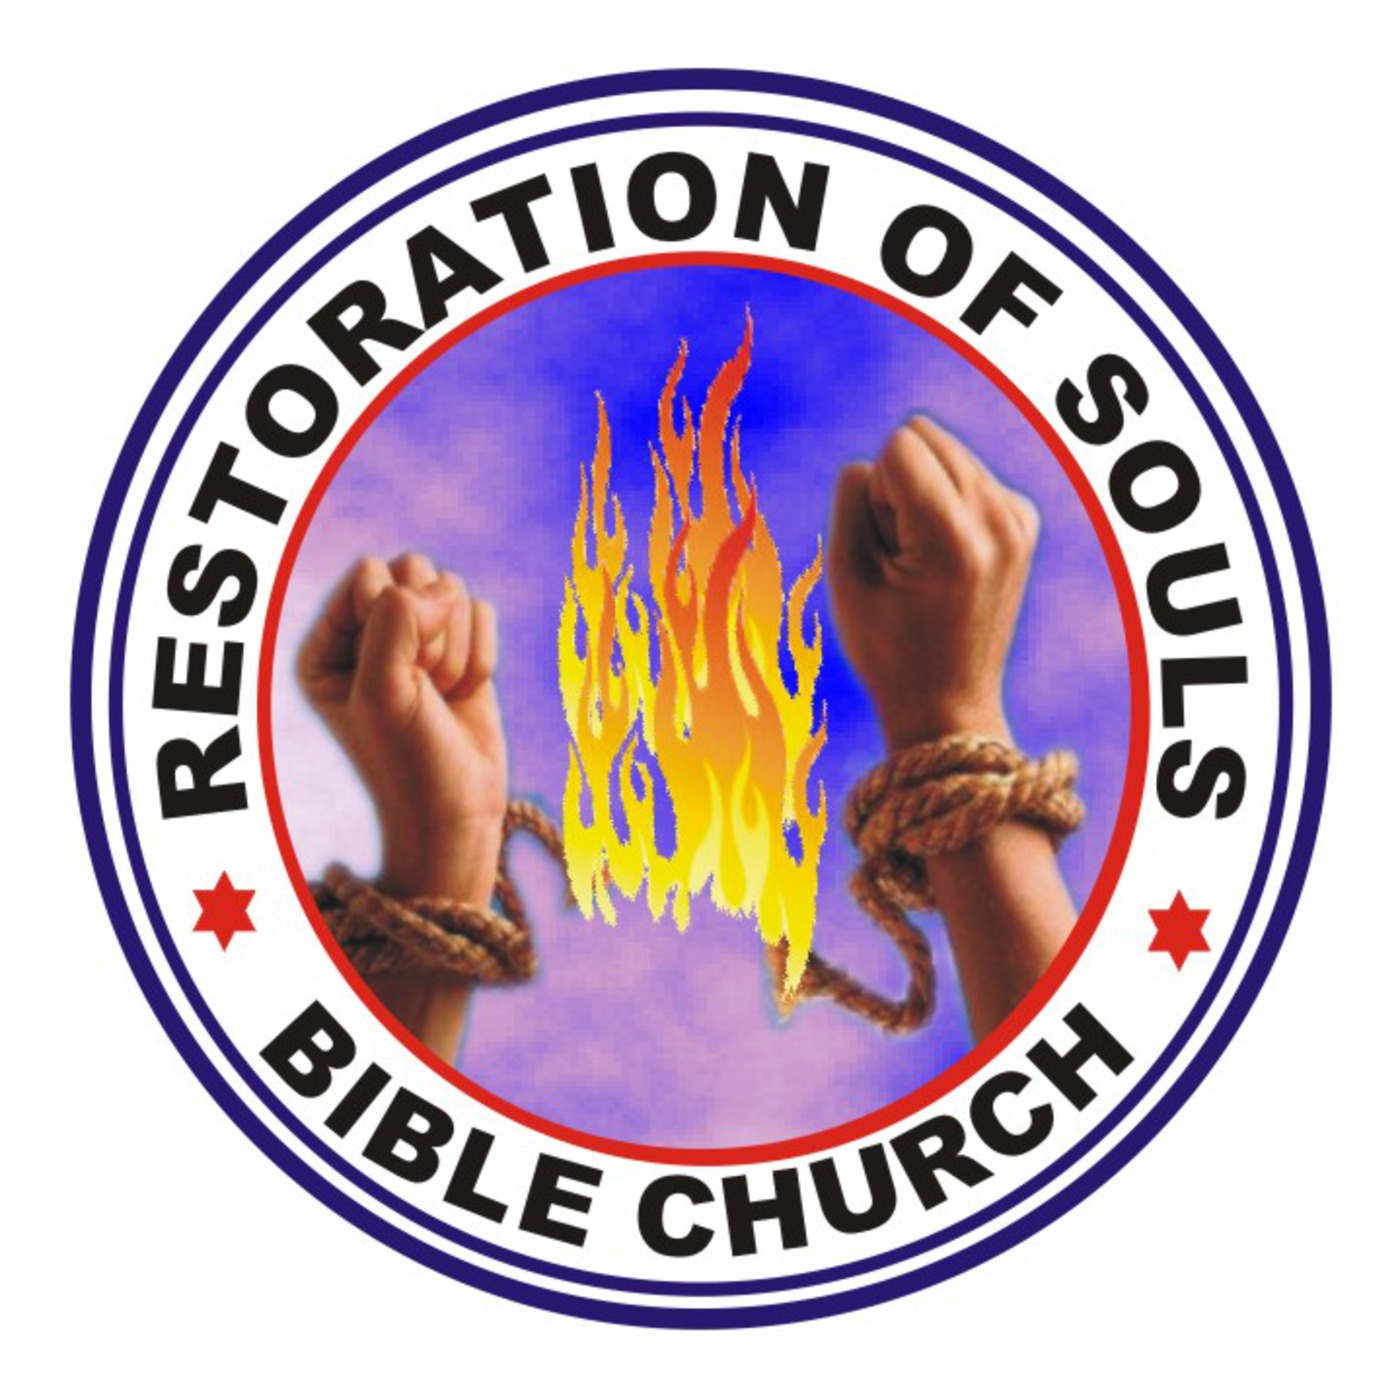 Restoration of Soul's Bible Church Podcast